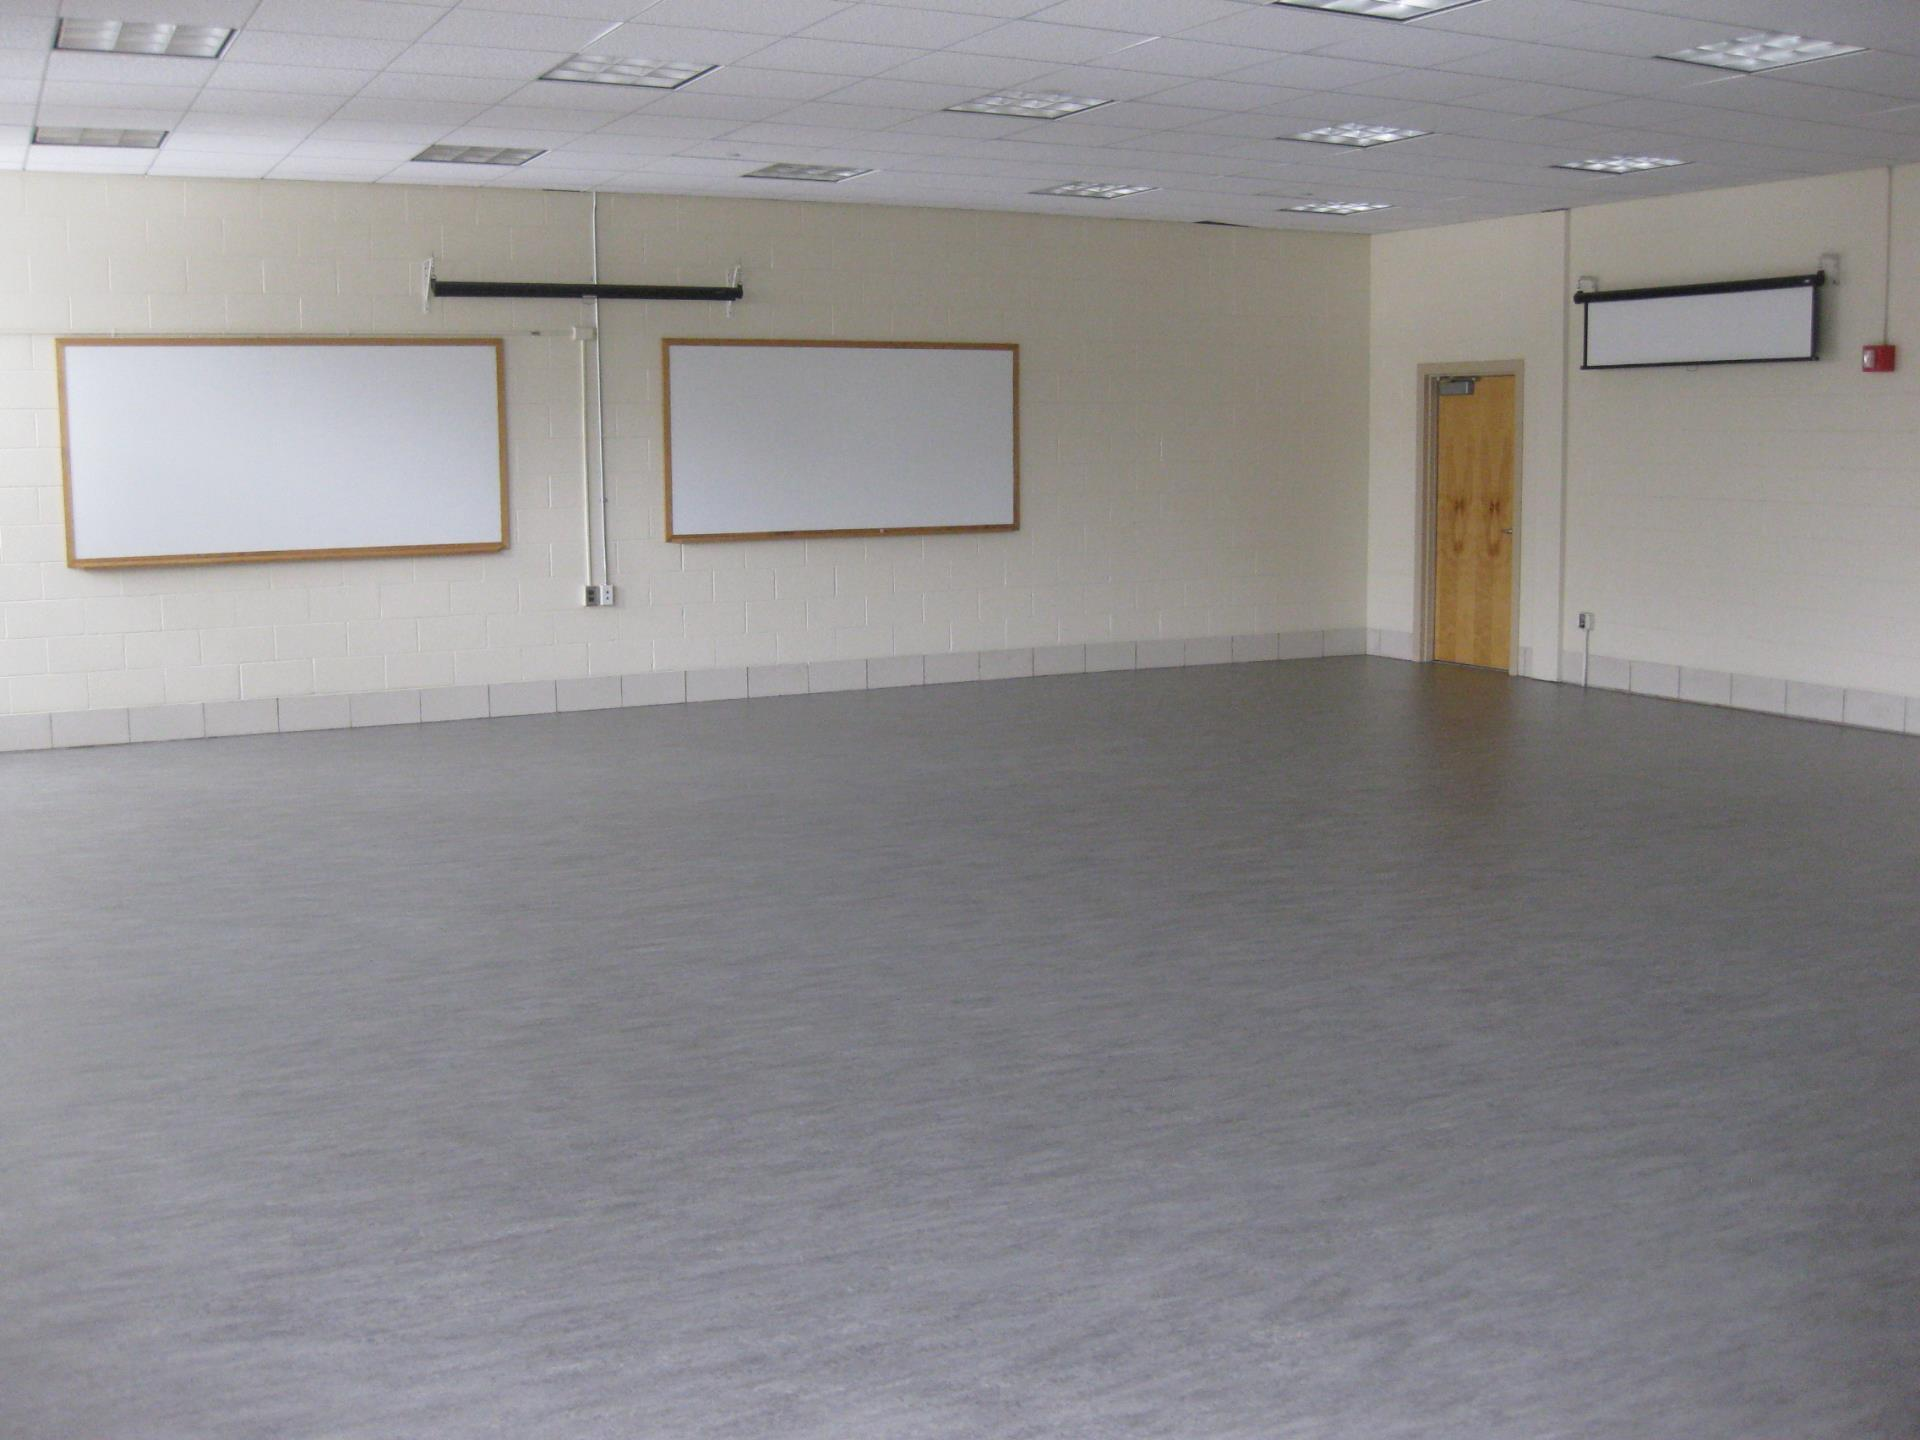 Large empty room with two whiteboards